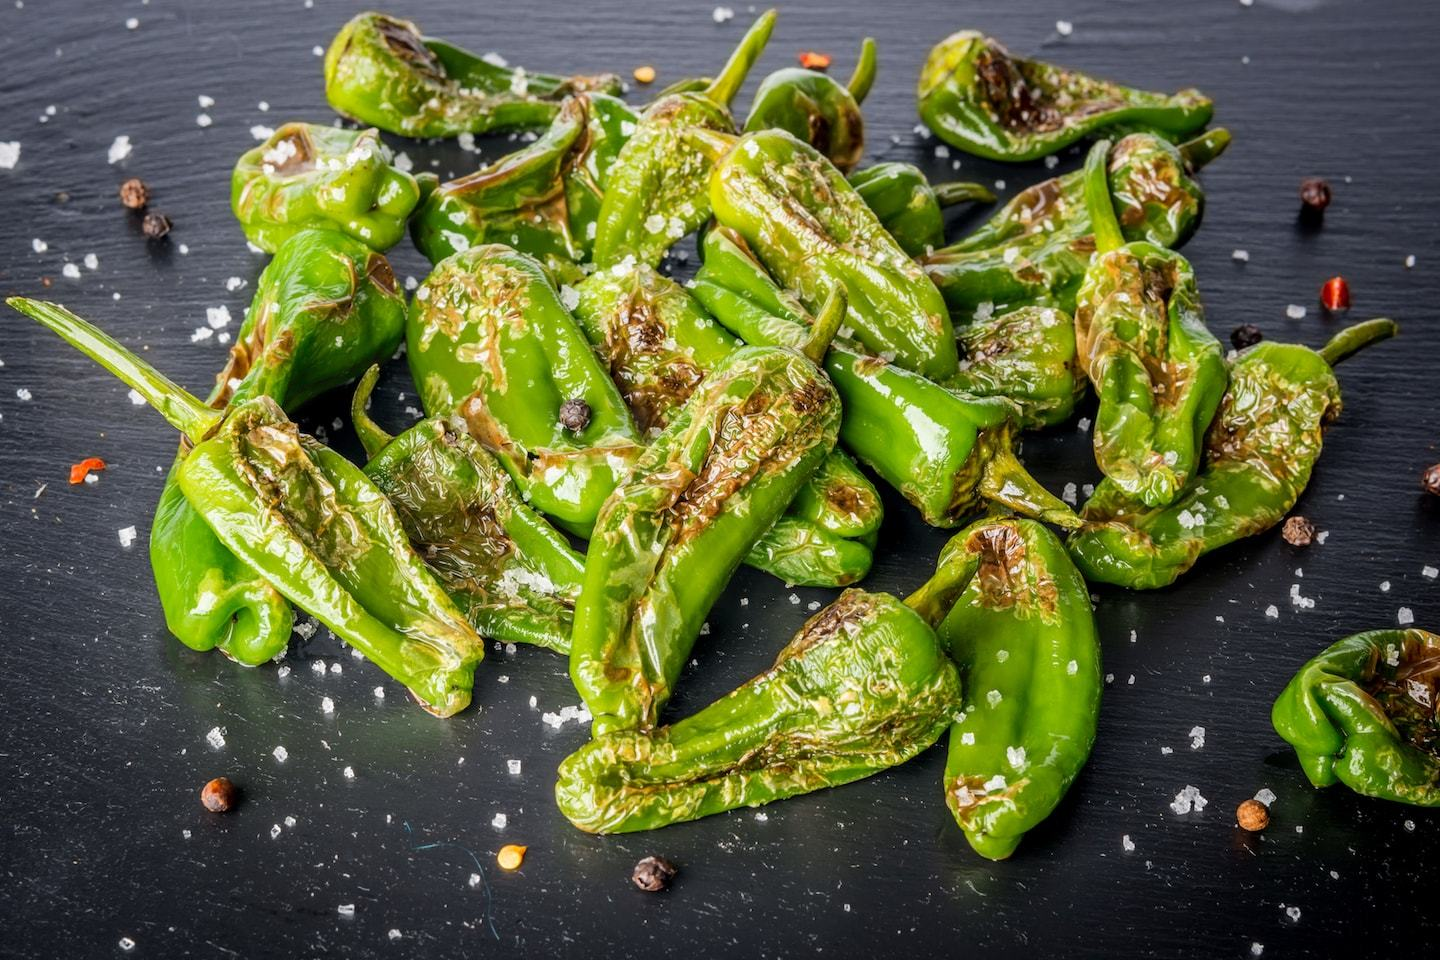 blistered green peppers